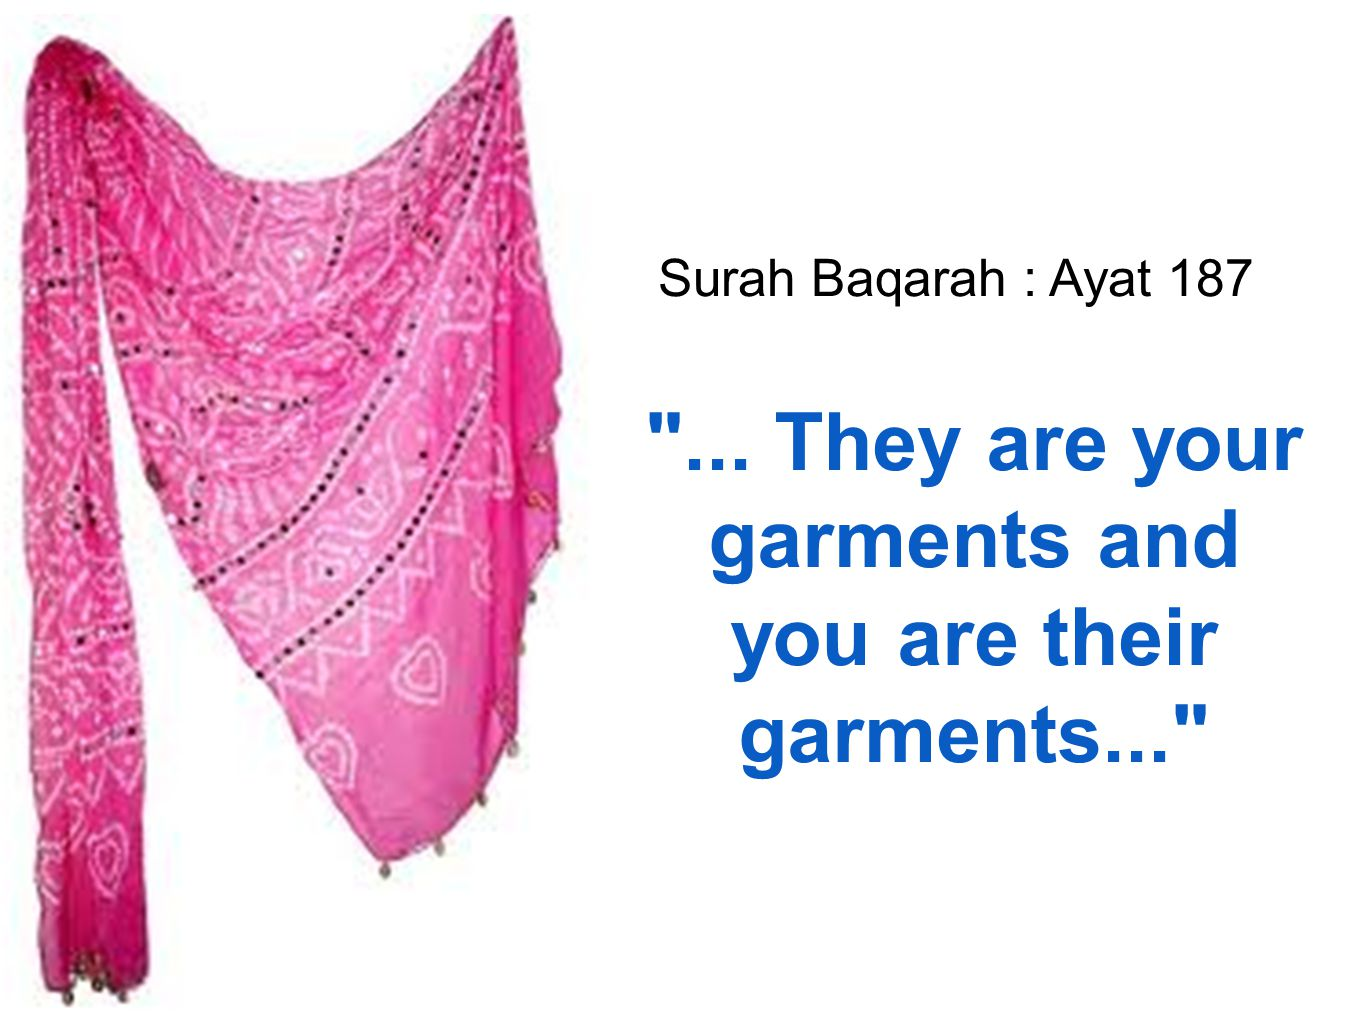 ... They are your garments and you are their garments...